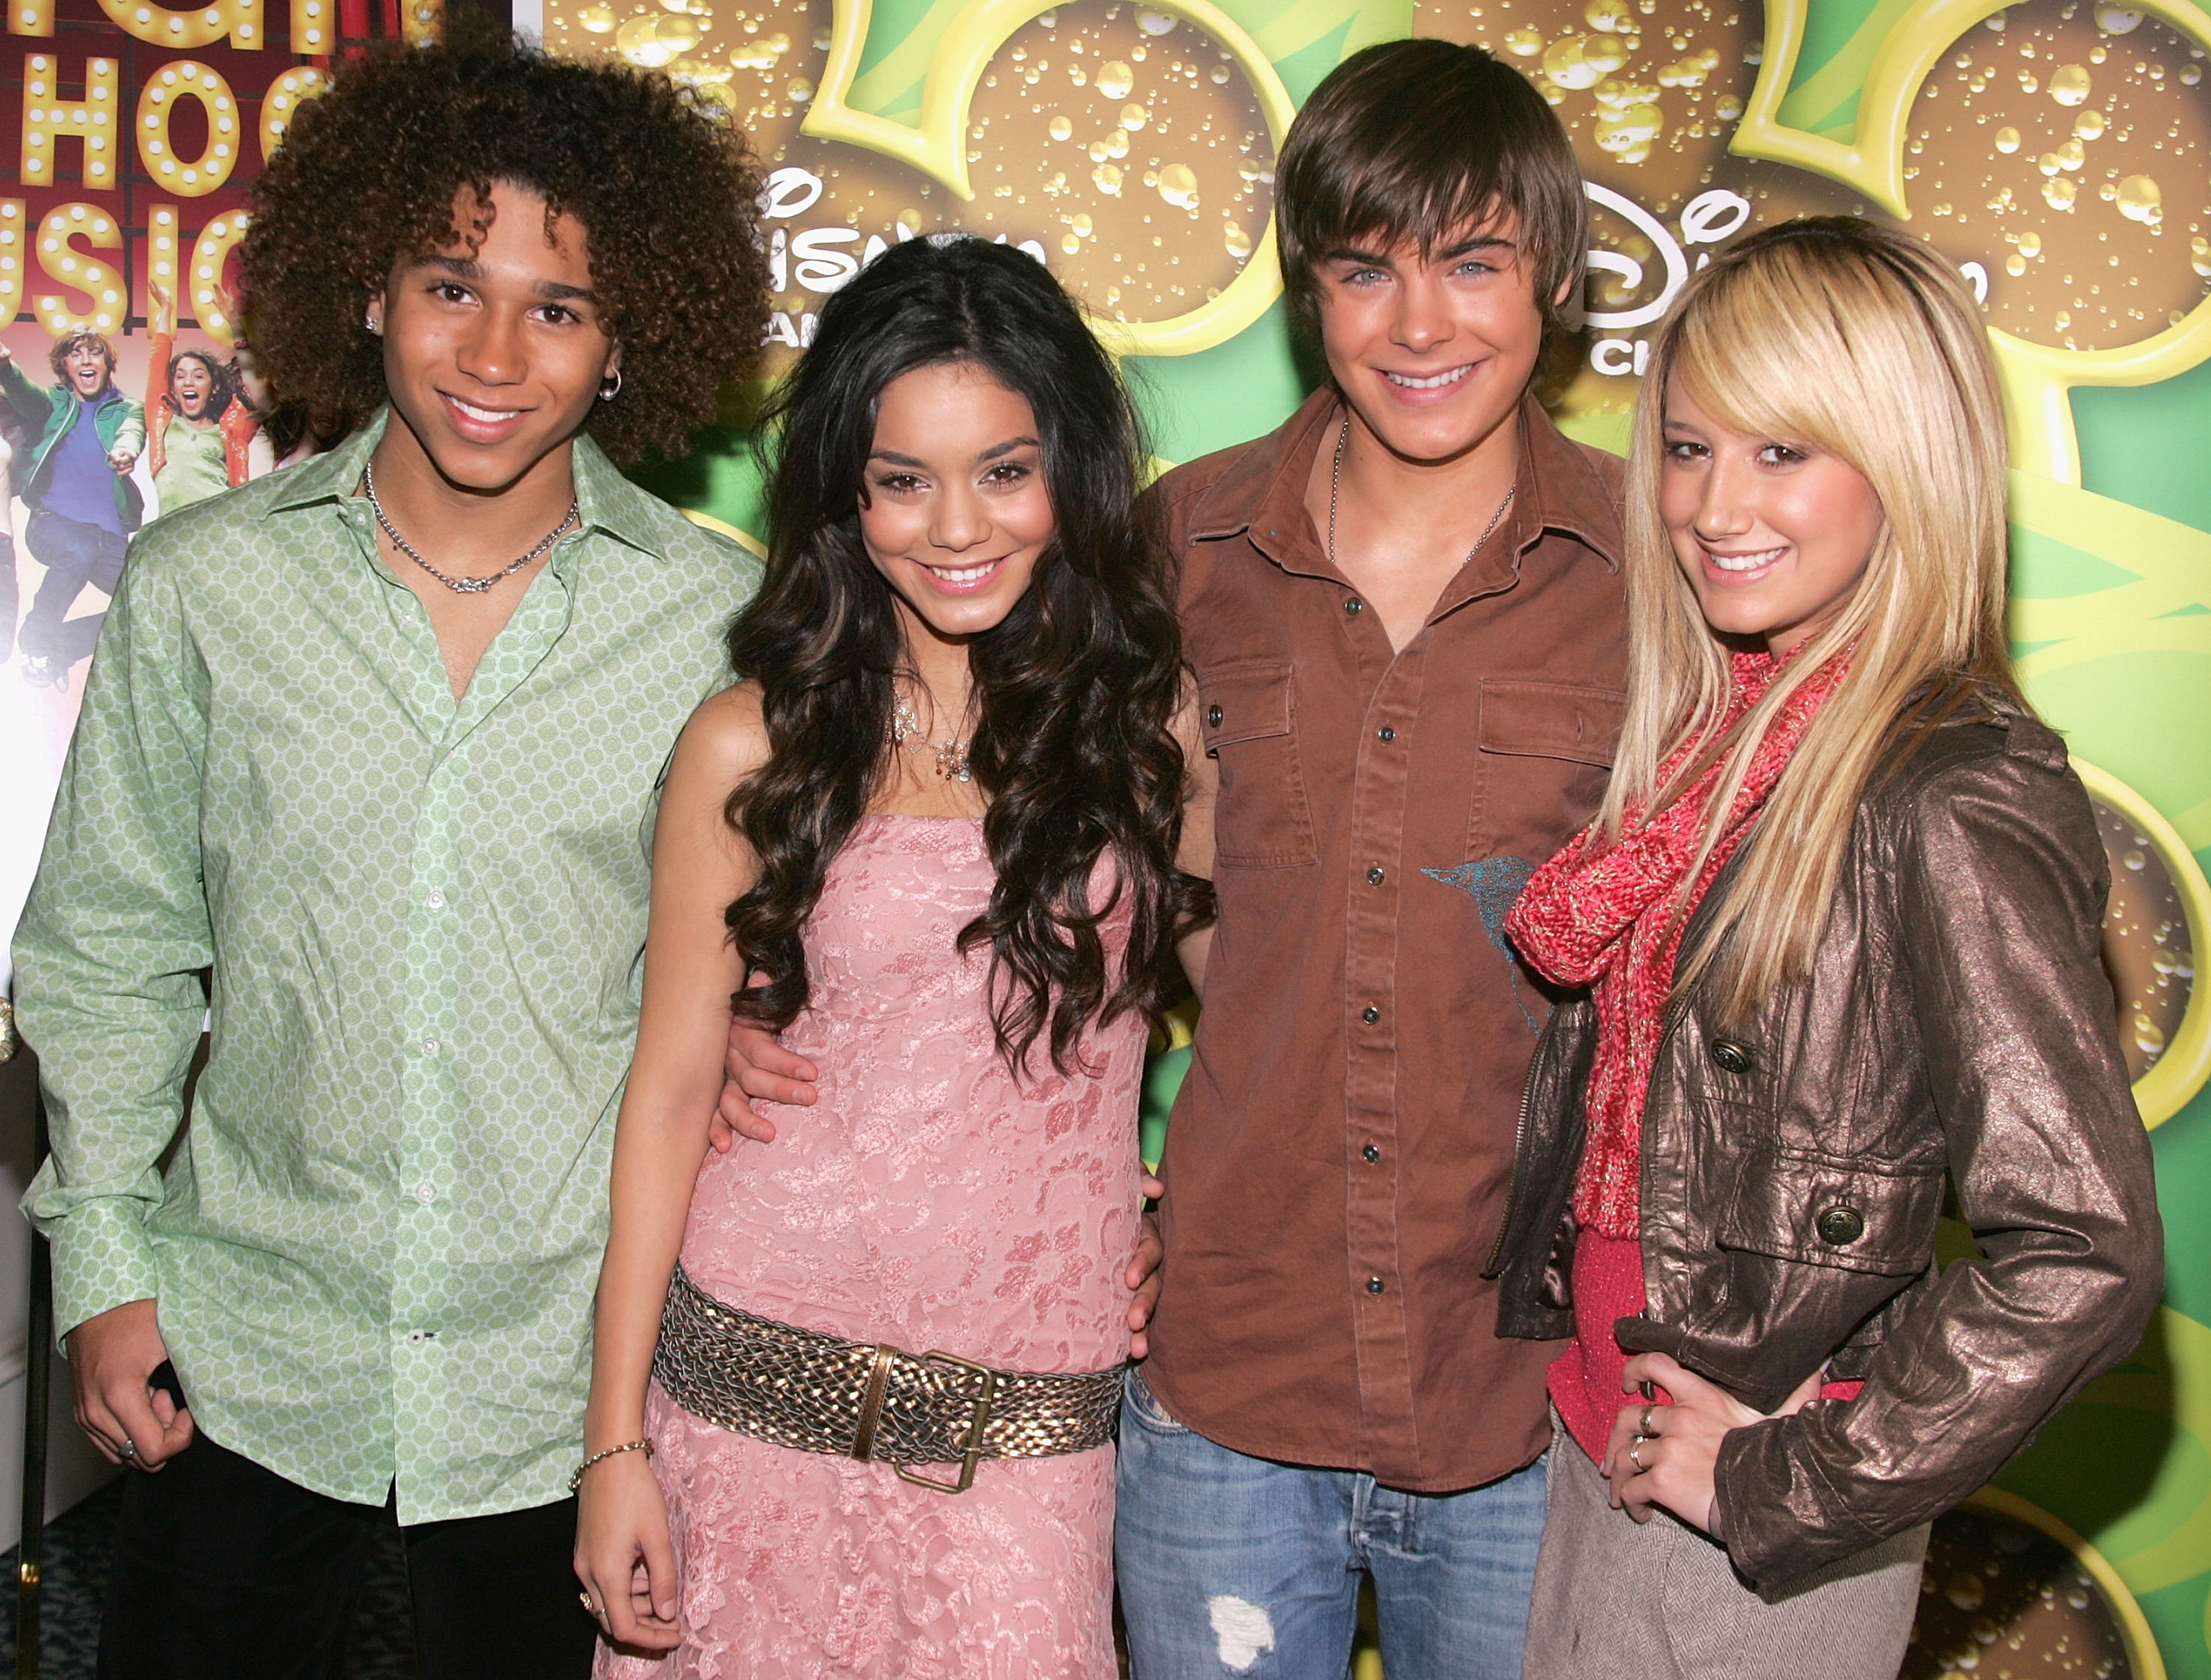 Disney S High School Musical Franchise By The Numbers